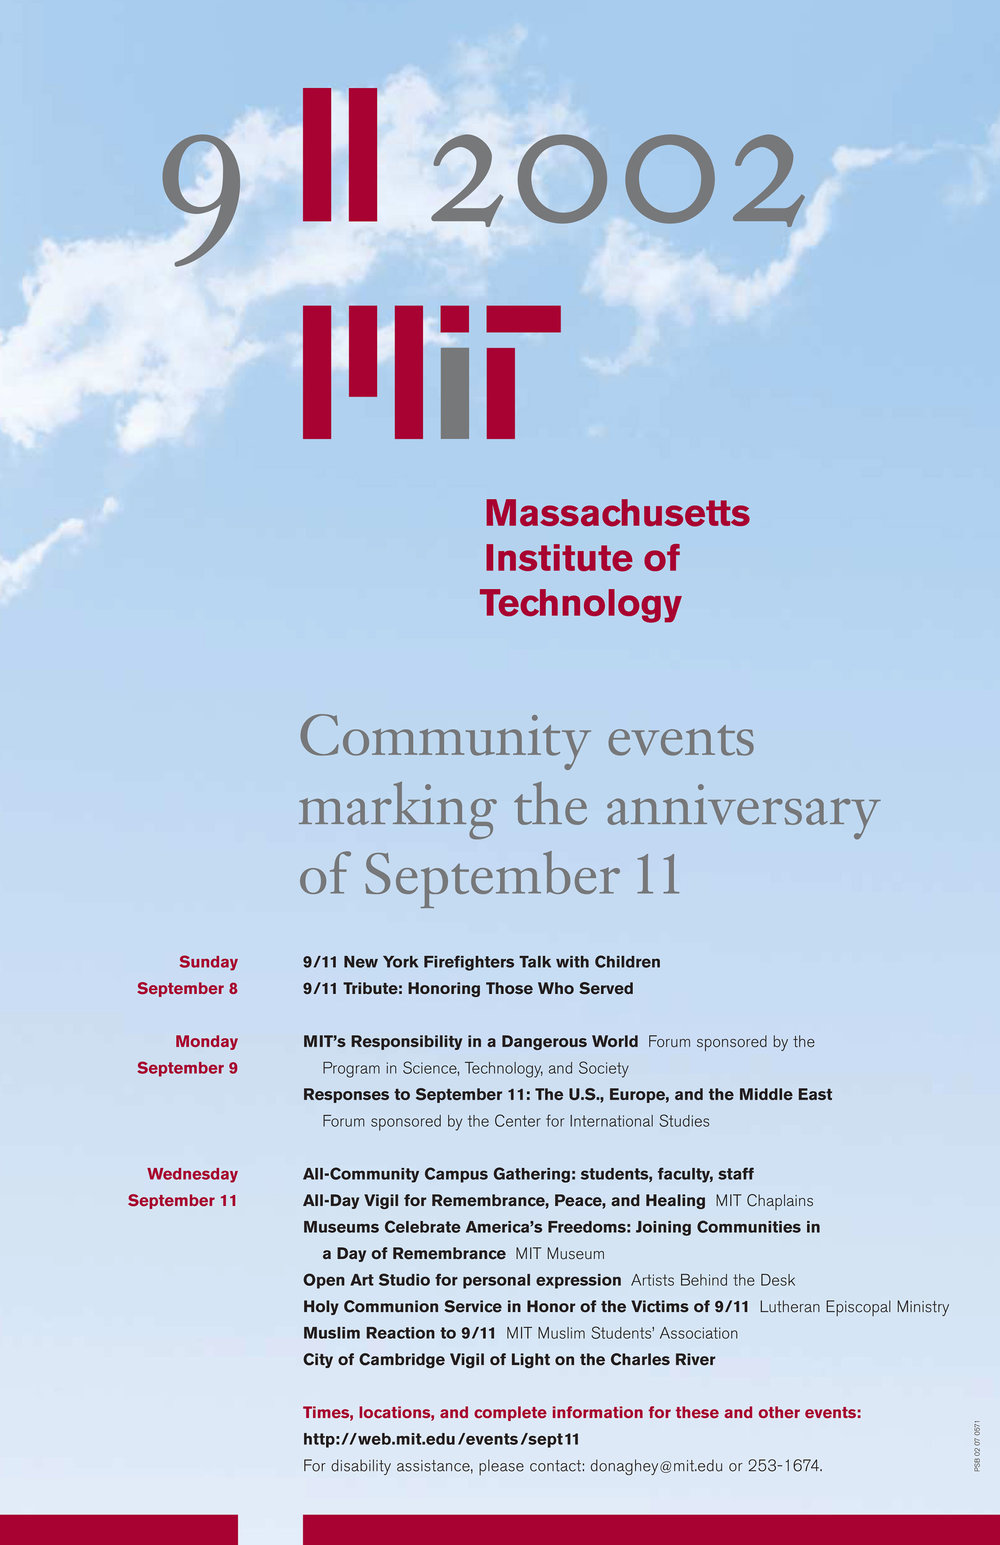 Community events marking the anniversary of 9/11